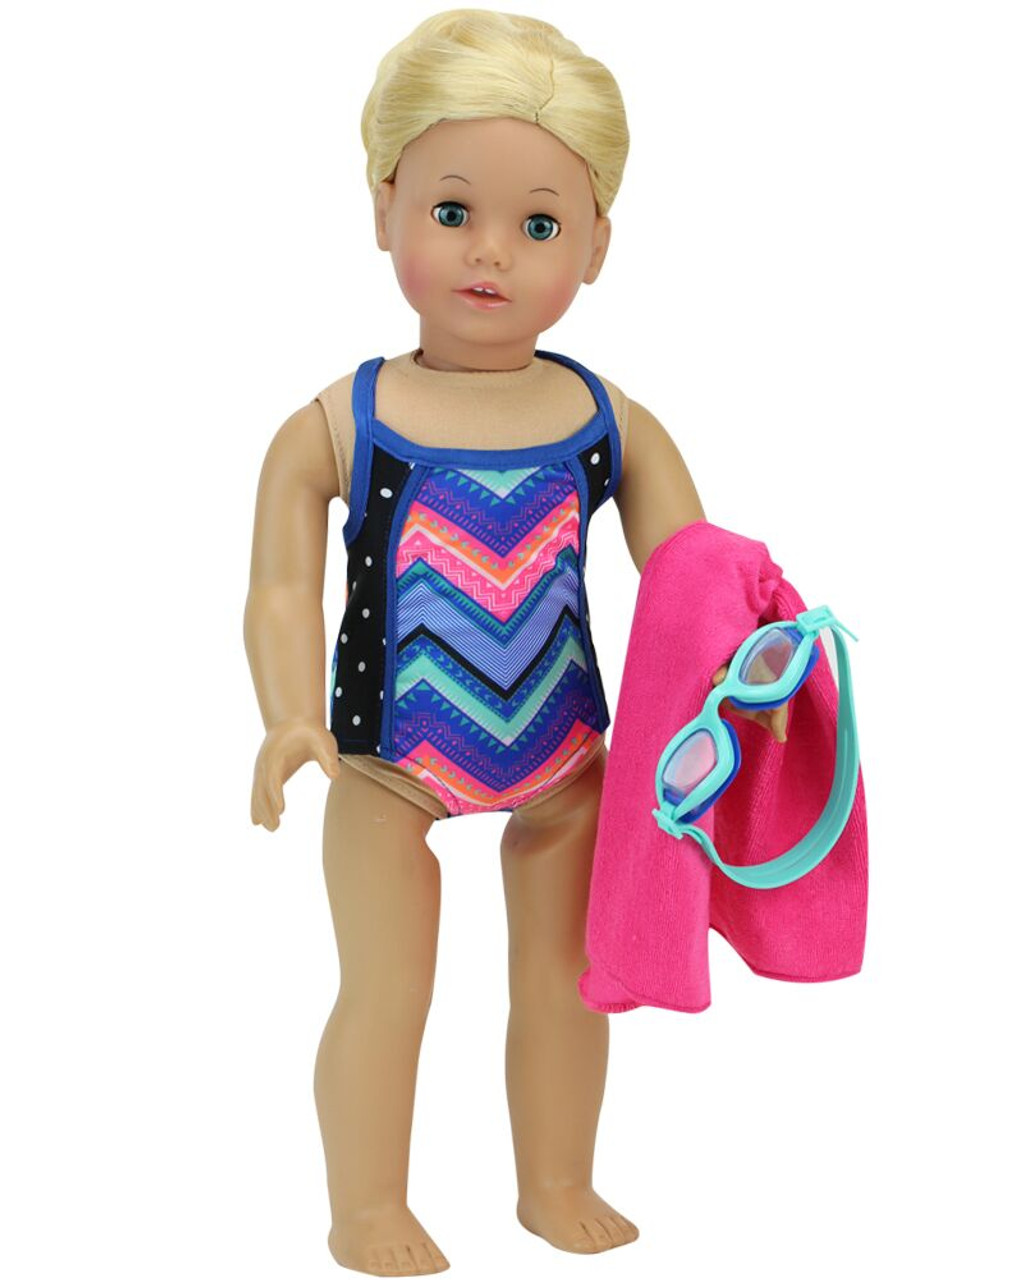 """Doll Clothes 18/"""" Bathing Suit Navy White One-piece Fits American Girl Dolls"""